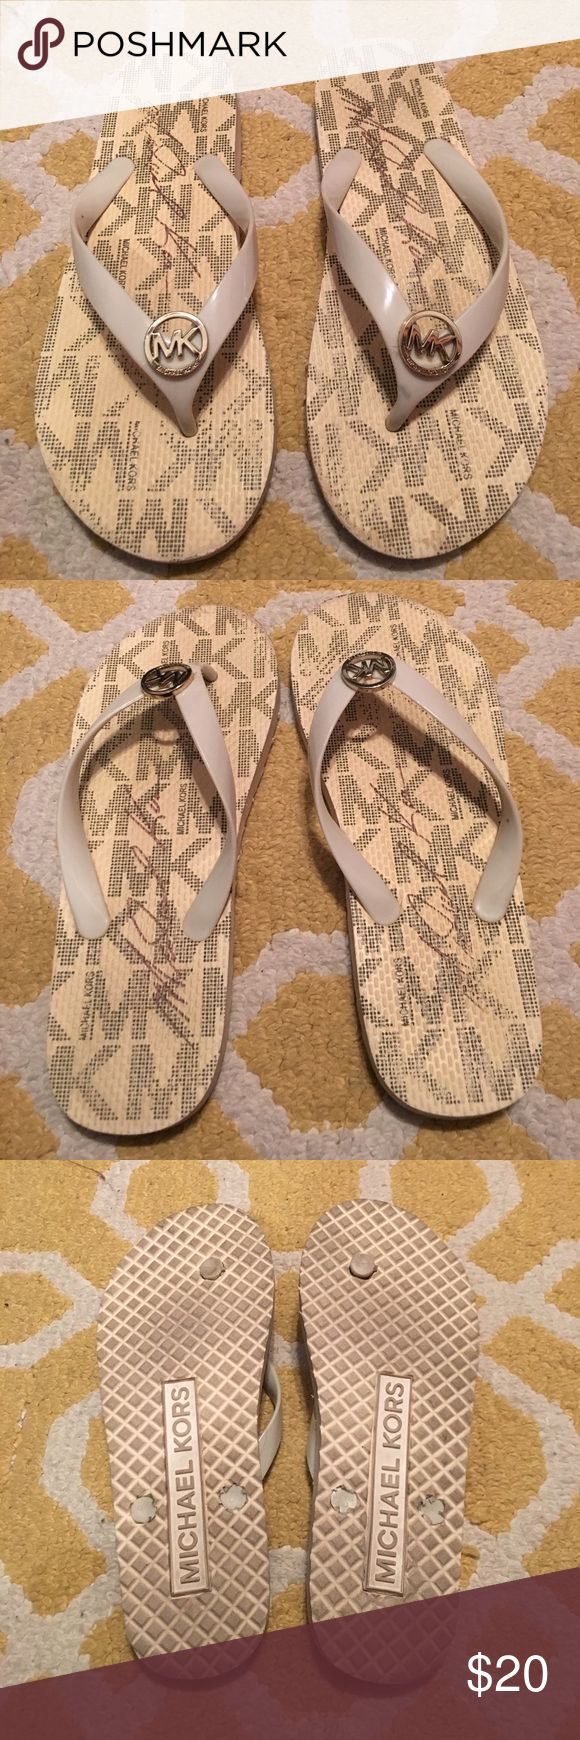 Michael Kors Cream Flip Flops size 7 Cream Michael Kors flip flops. Size 7. Gently used and show some signs of wear on the sides and top of flip flop as shown in pictures. Michael Kors Shoes Sandals